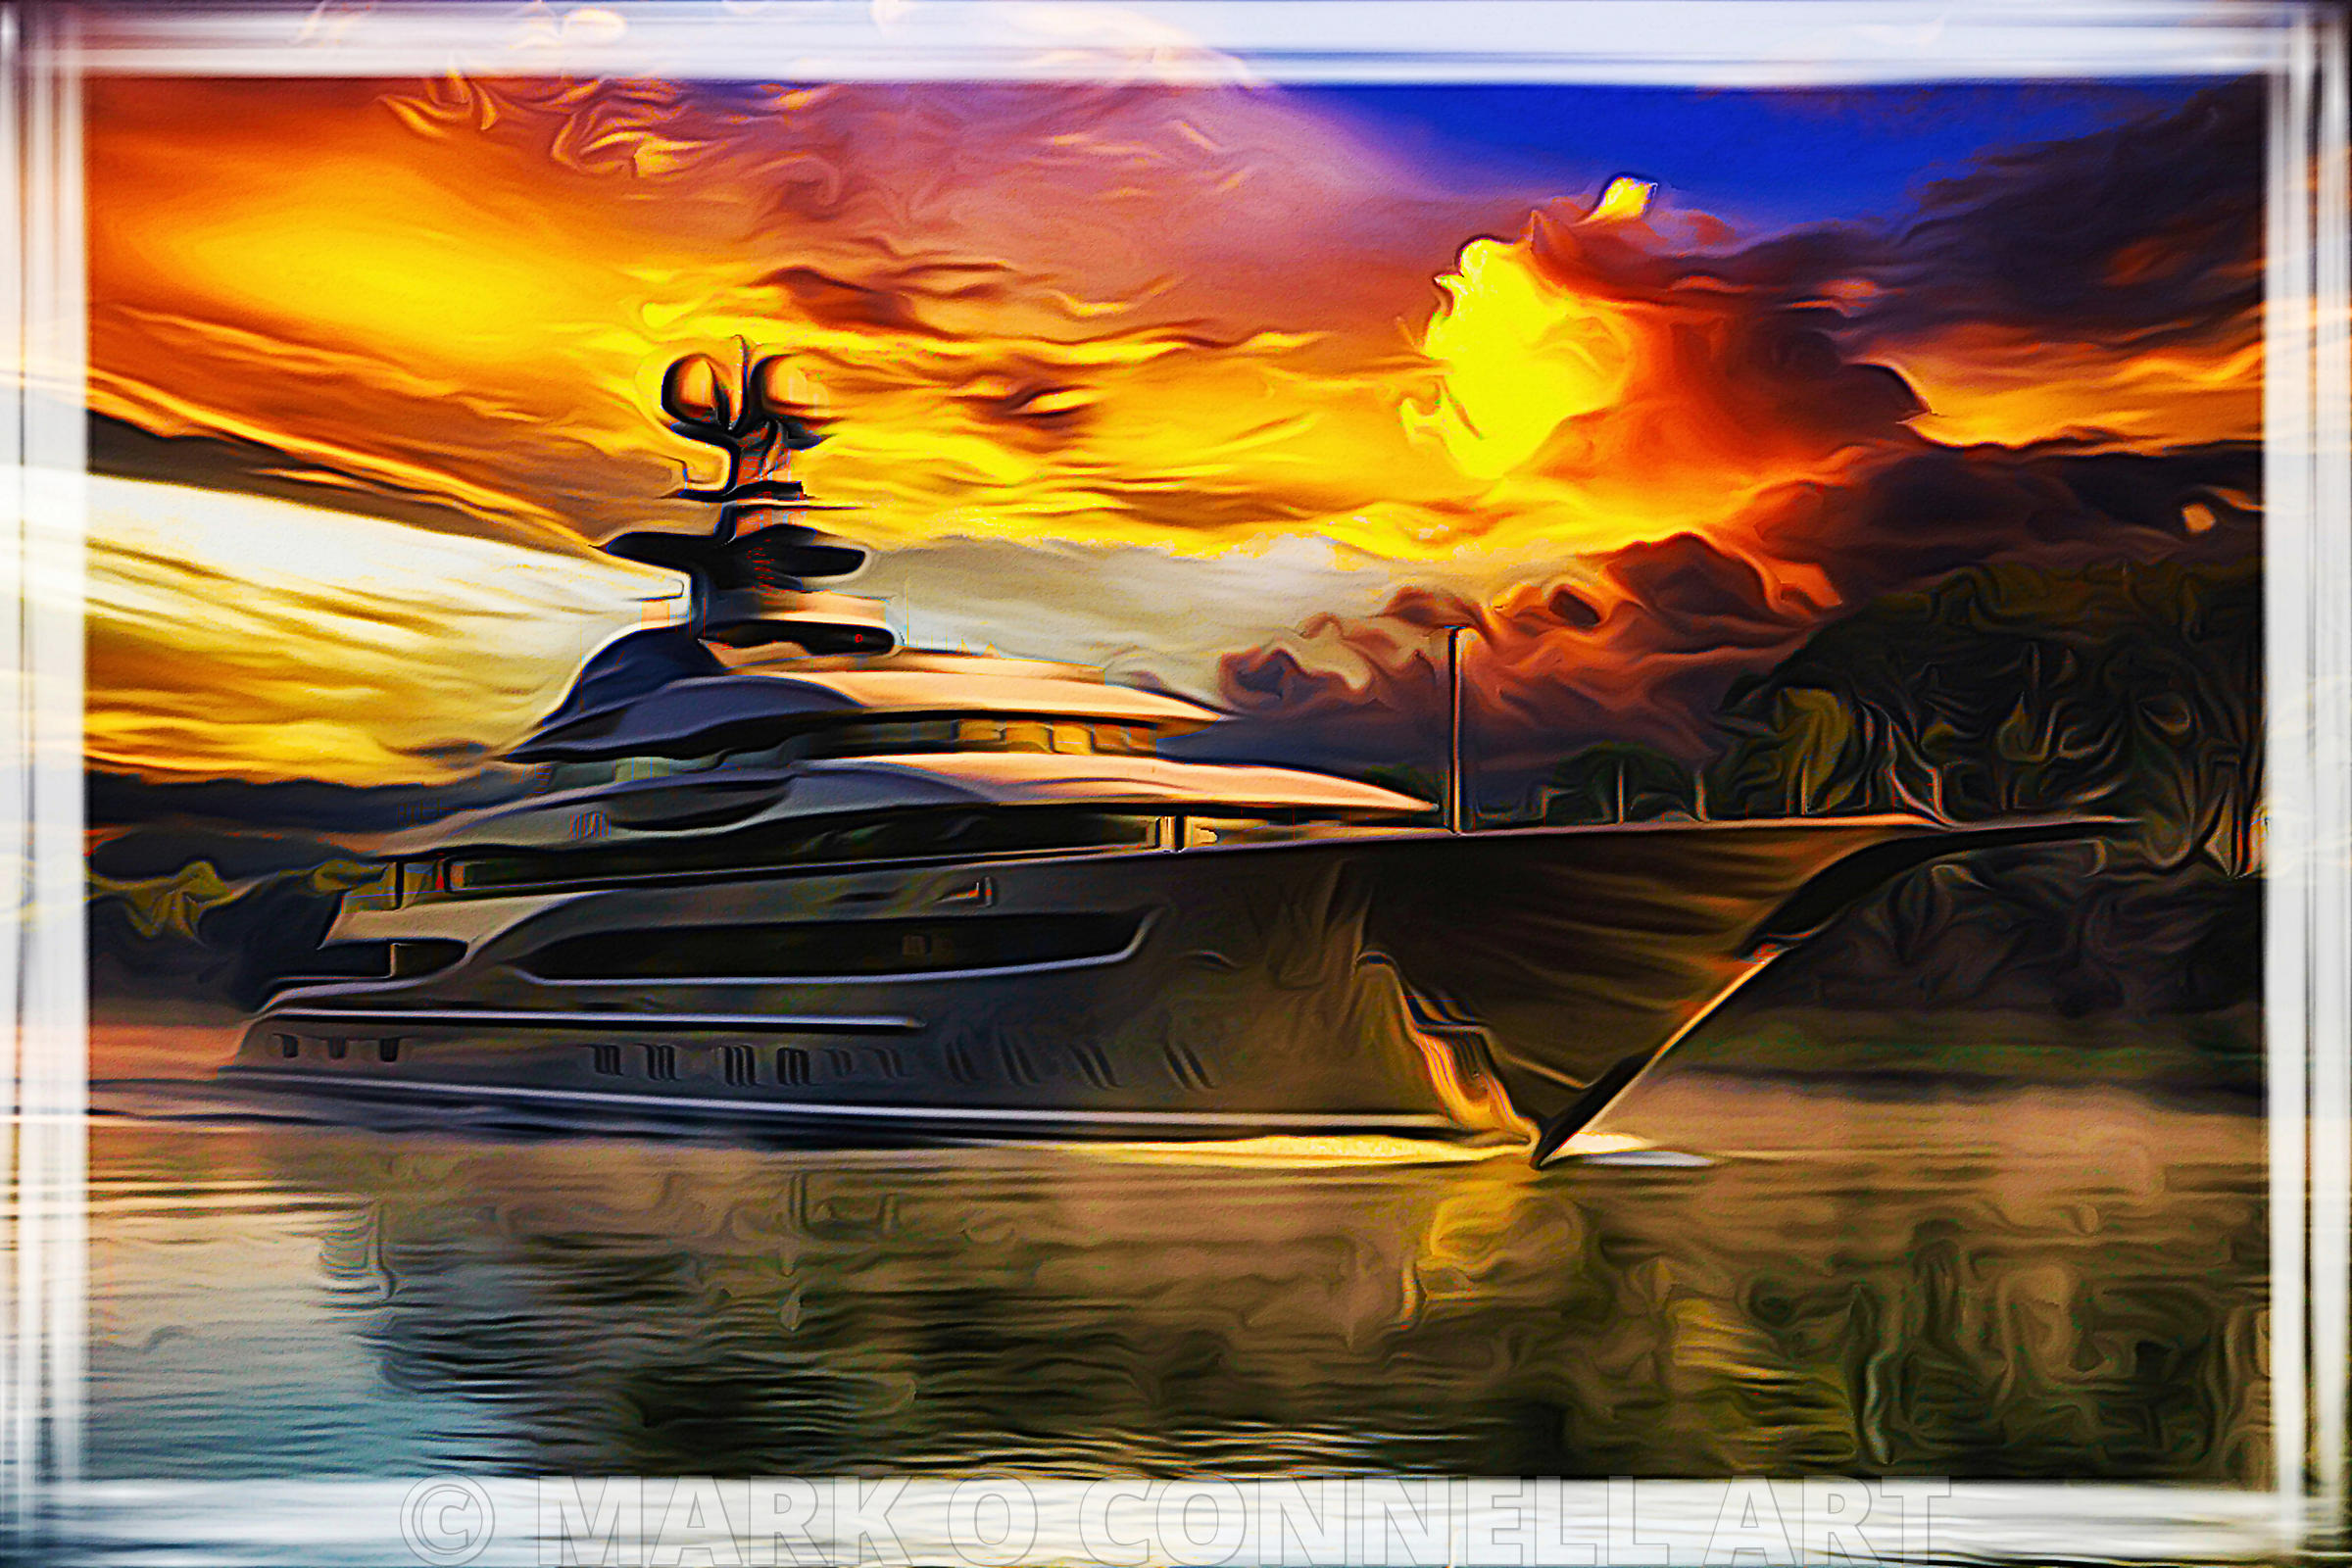 art,painting,airbrush,kismet,lurssen,superyacht,river,sunset,reflection,water,abstract